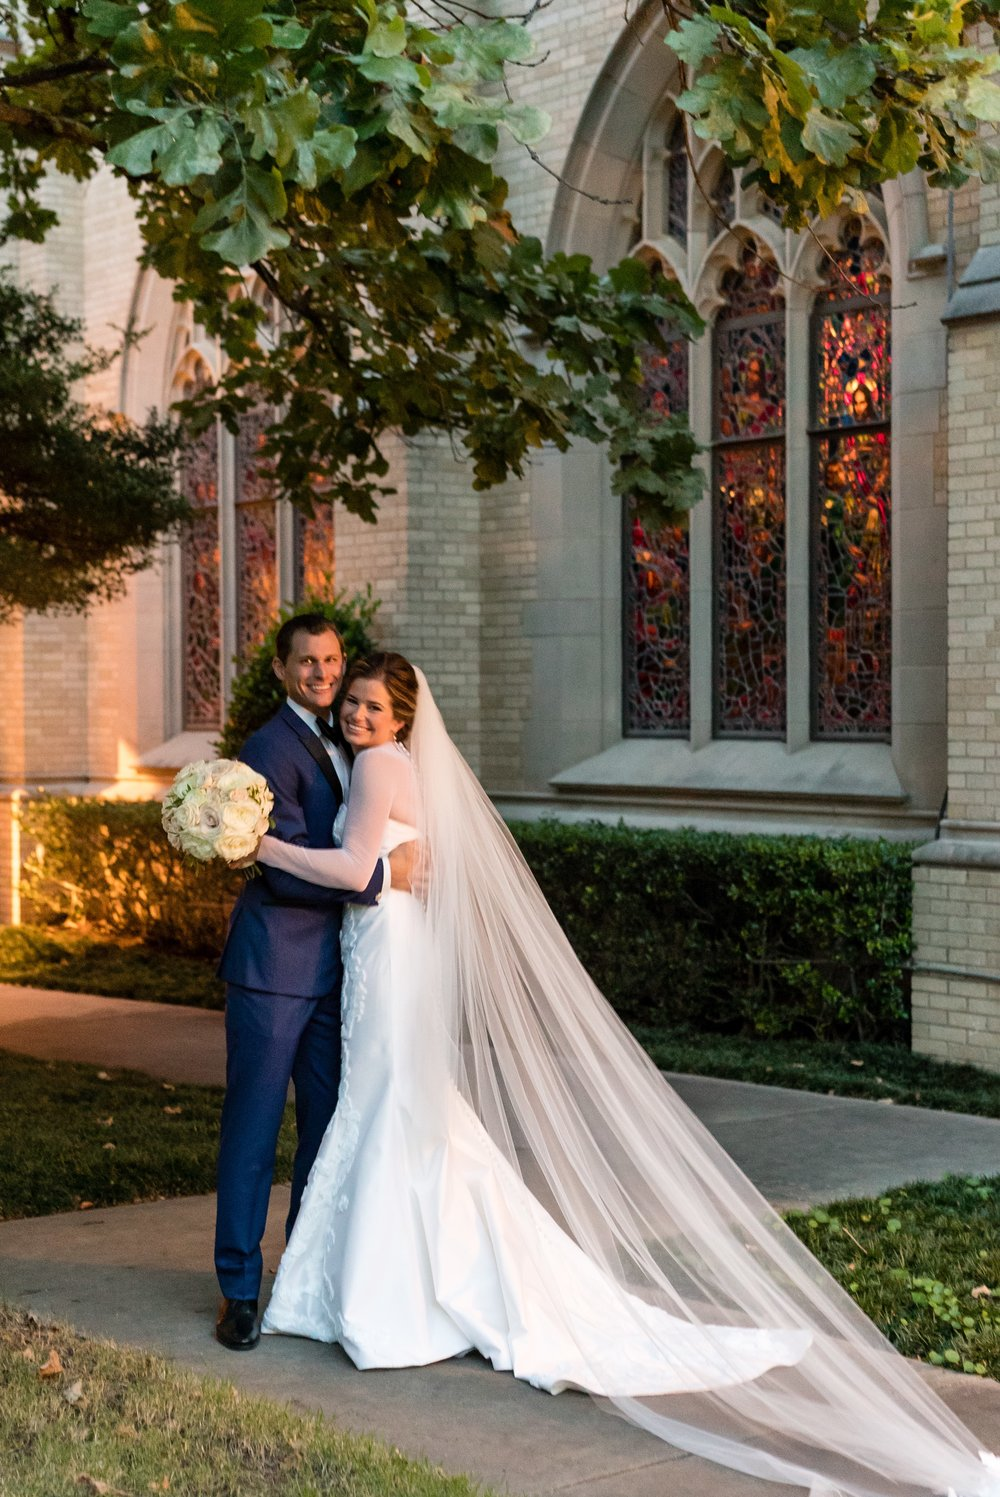 Couple Details - Dallas, Tx - Fall Wedding - Julian Leaver Events